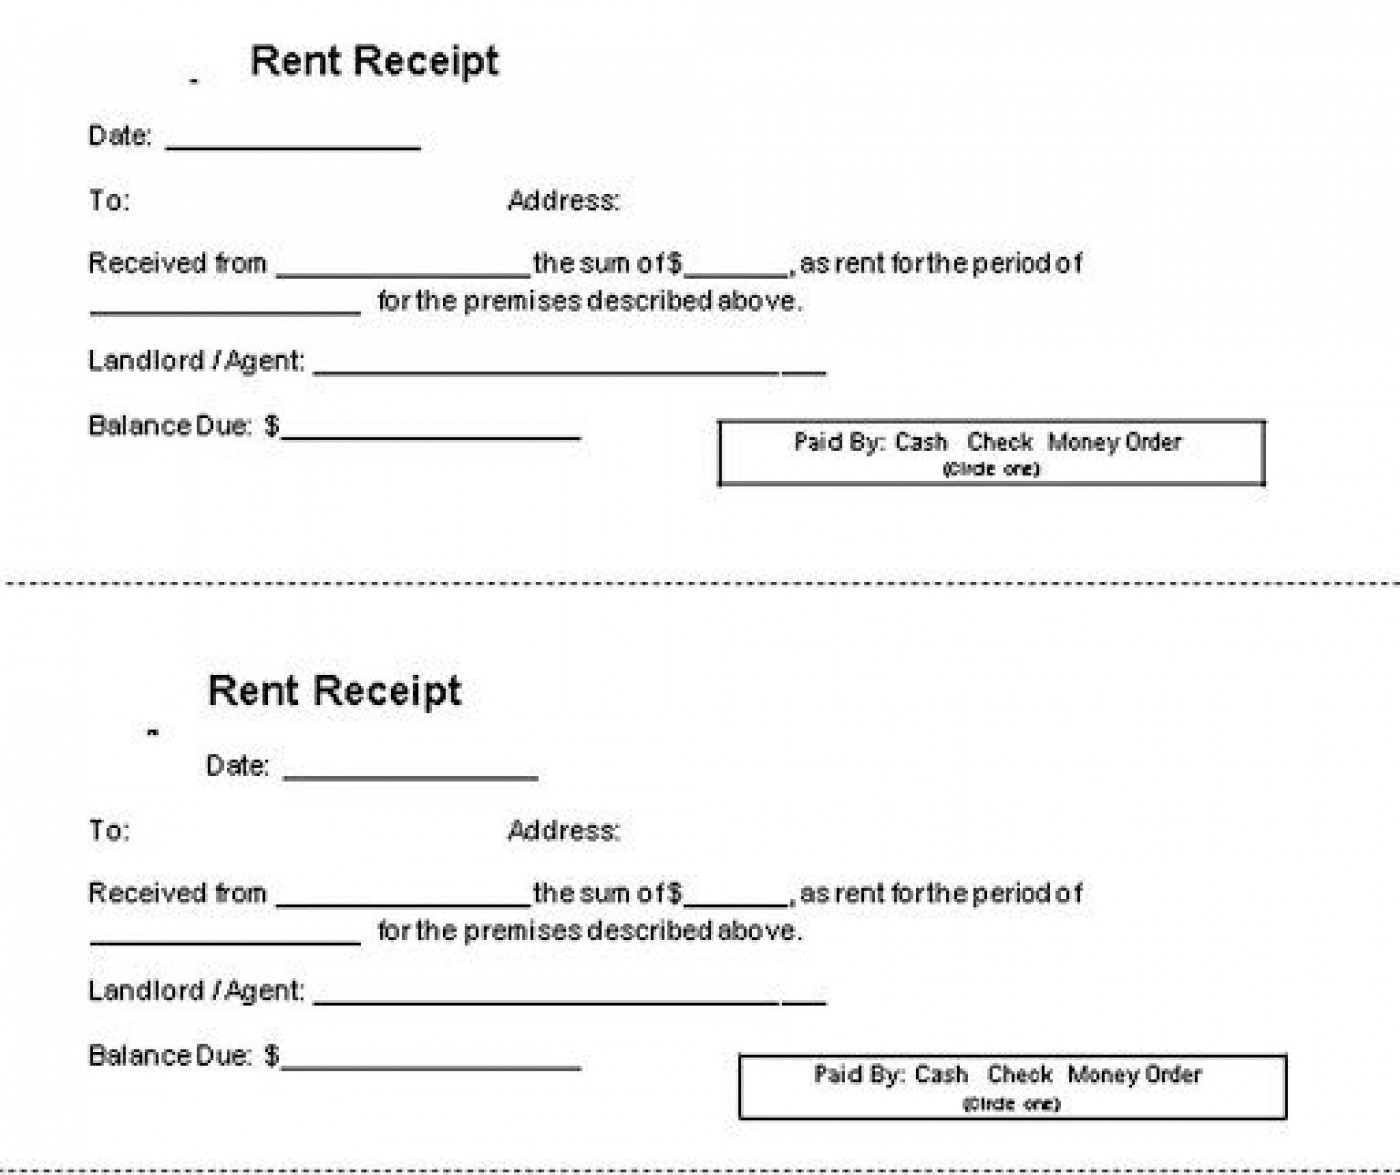 010 Magnificent House Rent Receipt Sample Doc Concept  Template Word Document Free Download Format For Income Tax1400